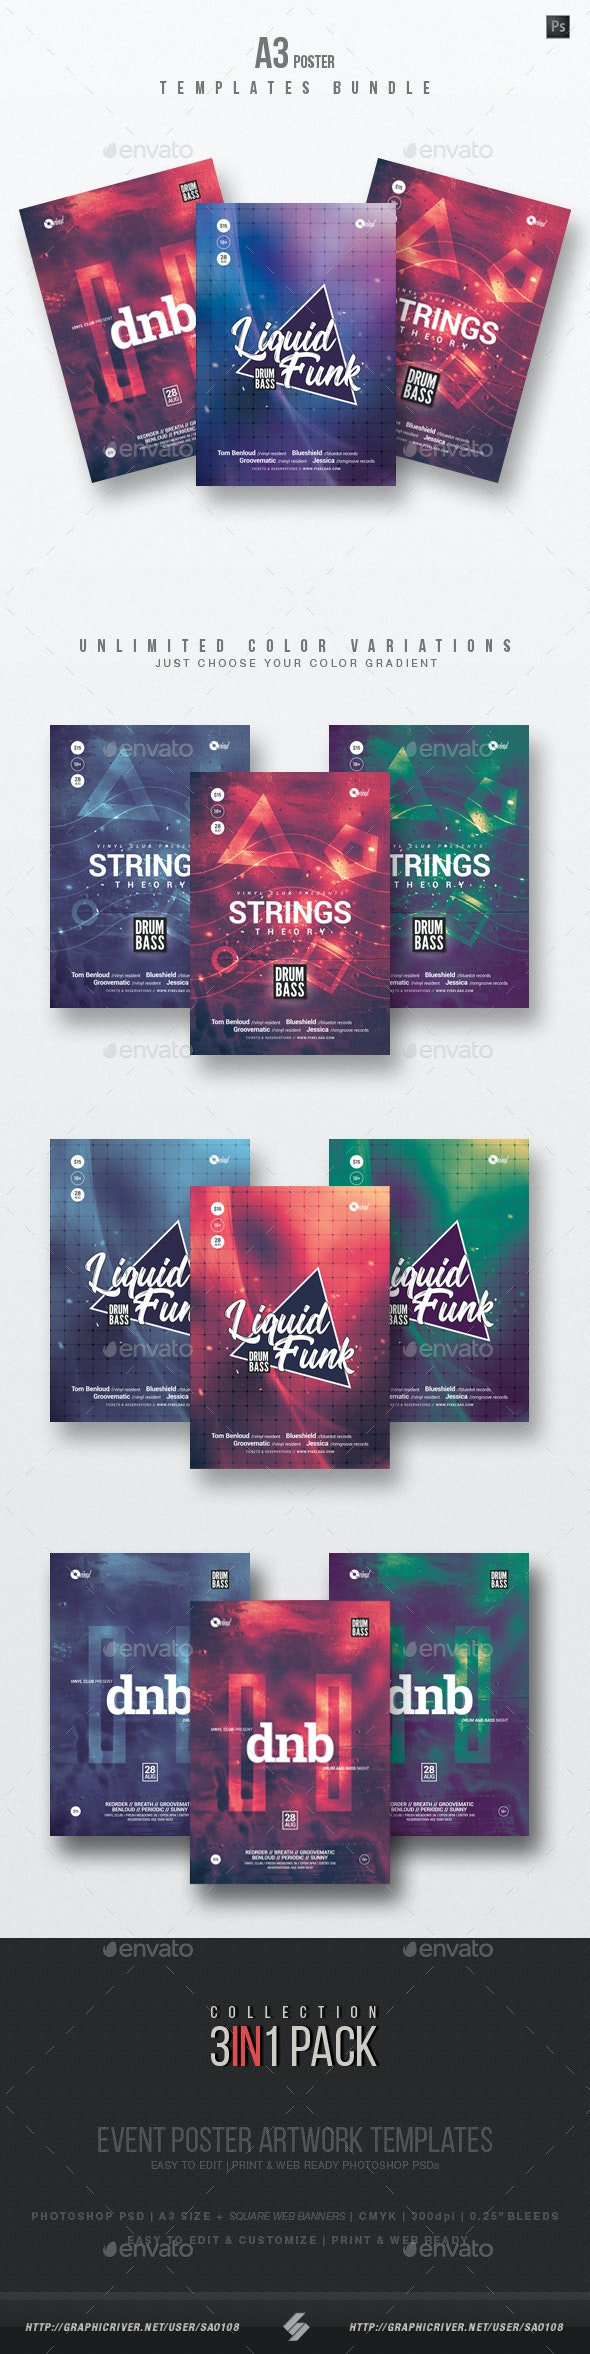 Drum and Bass vol.2 - Party Flyer / Poster Templates Bundle - Clubs & Parties Events